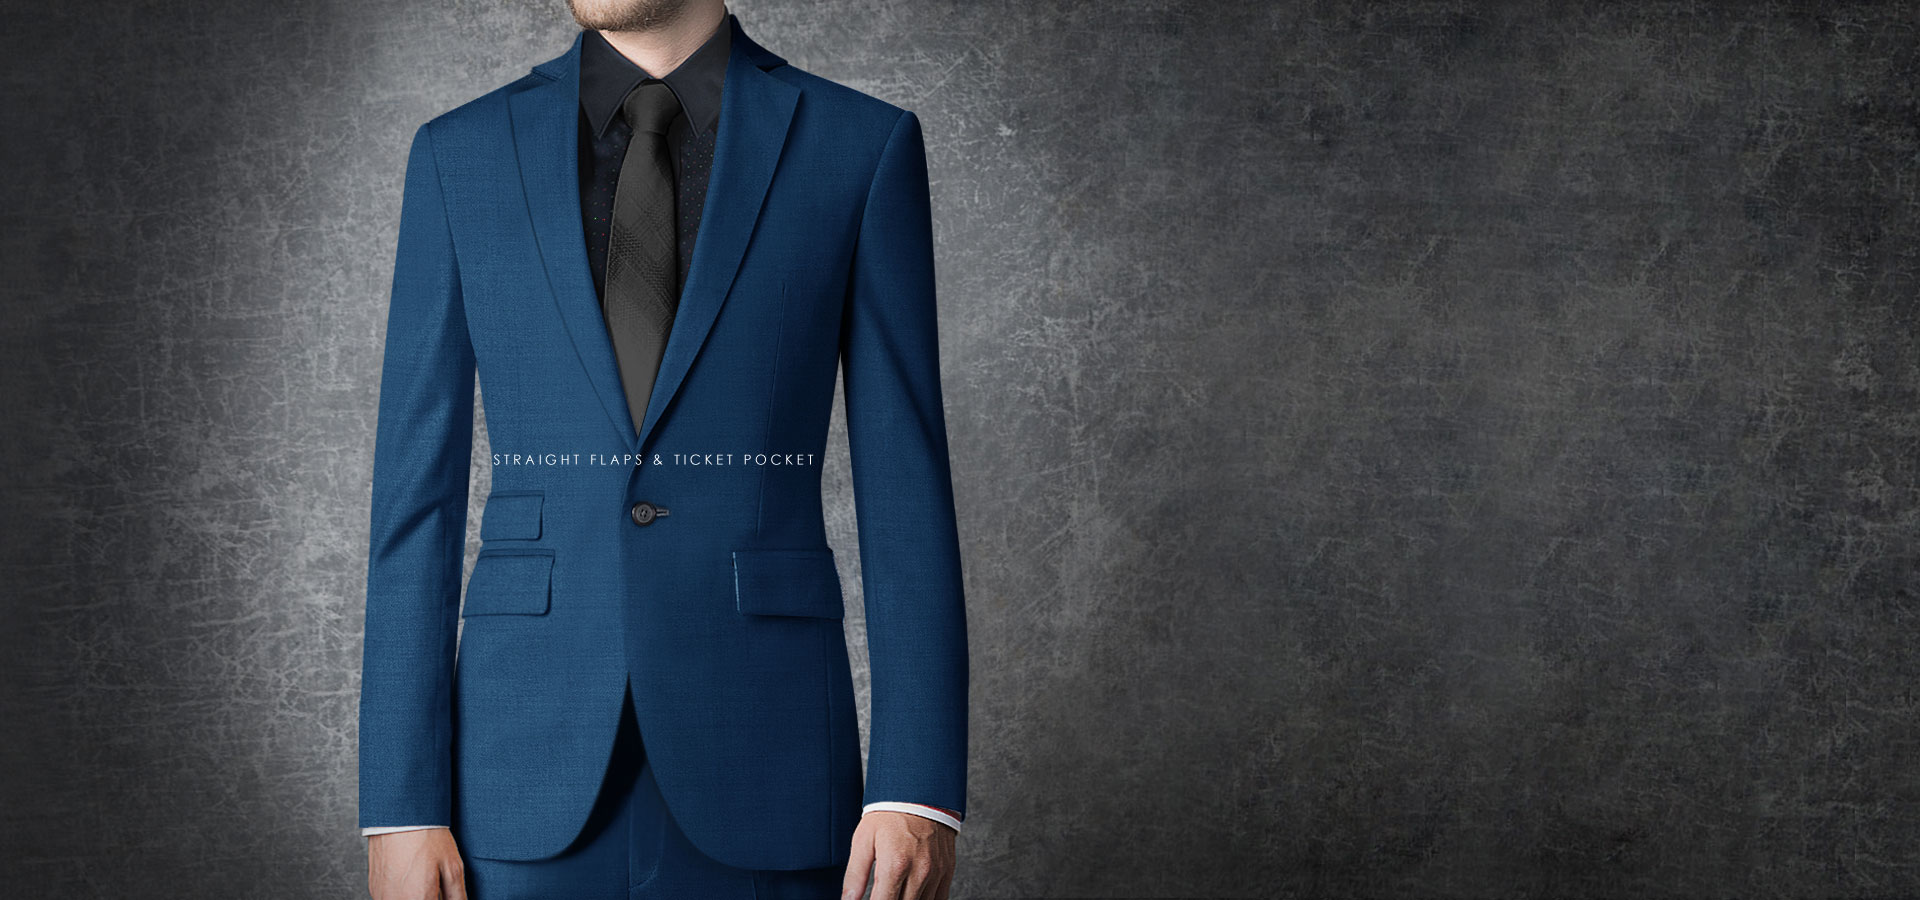 Bespoke Suits Online | itailor